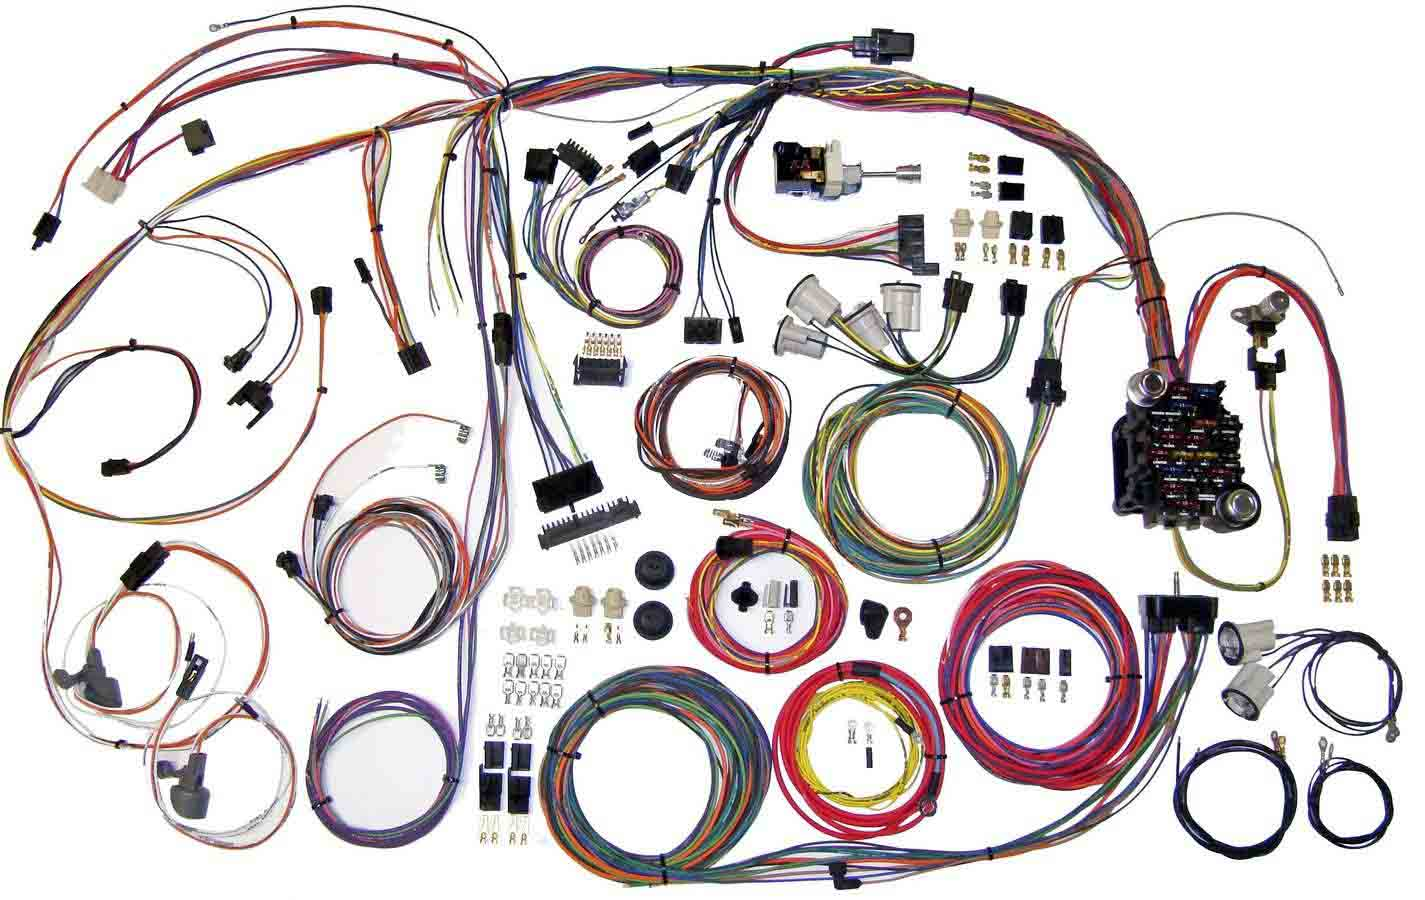 Grand Prix Auto Gauges Wire Harness Moreover Flex A Lite Fan Controller Wiring Diagram 70 72 Chevelle